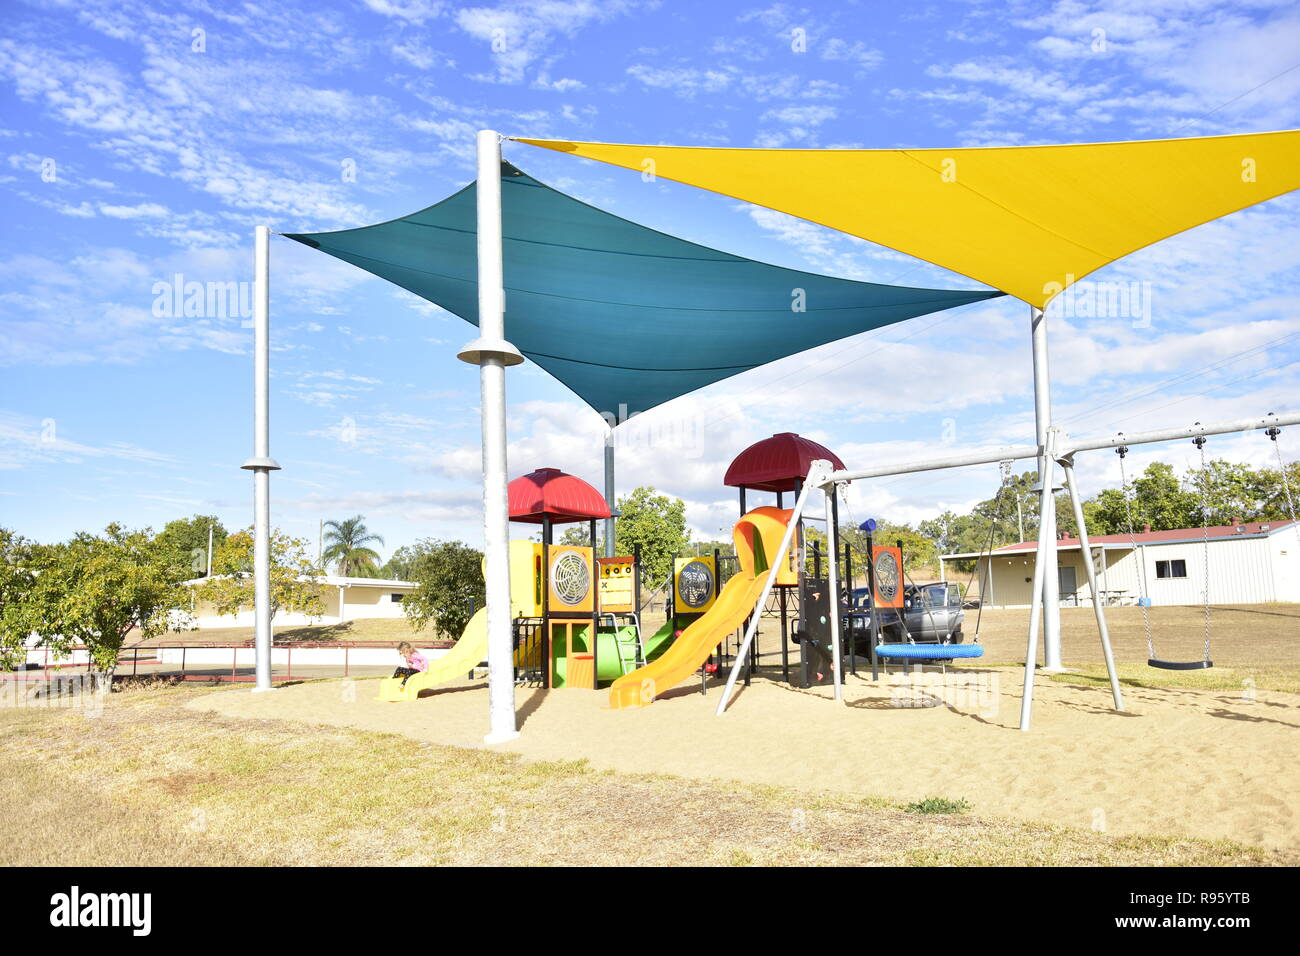 A LONELY PLAY GROUND - Stock Image